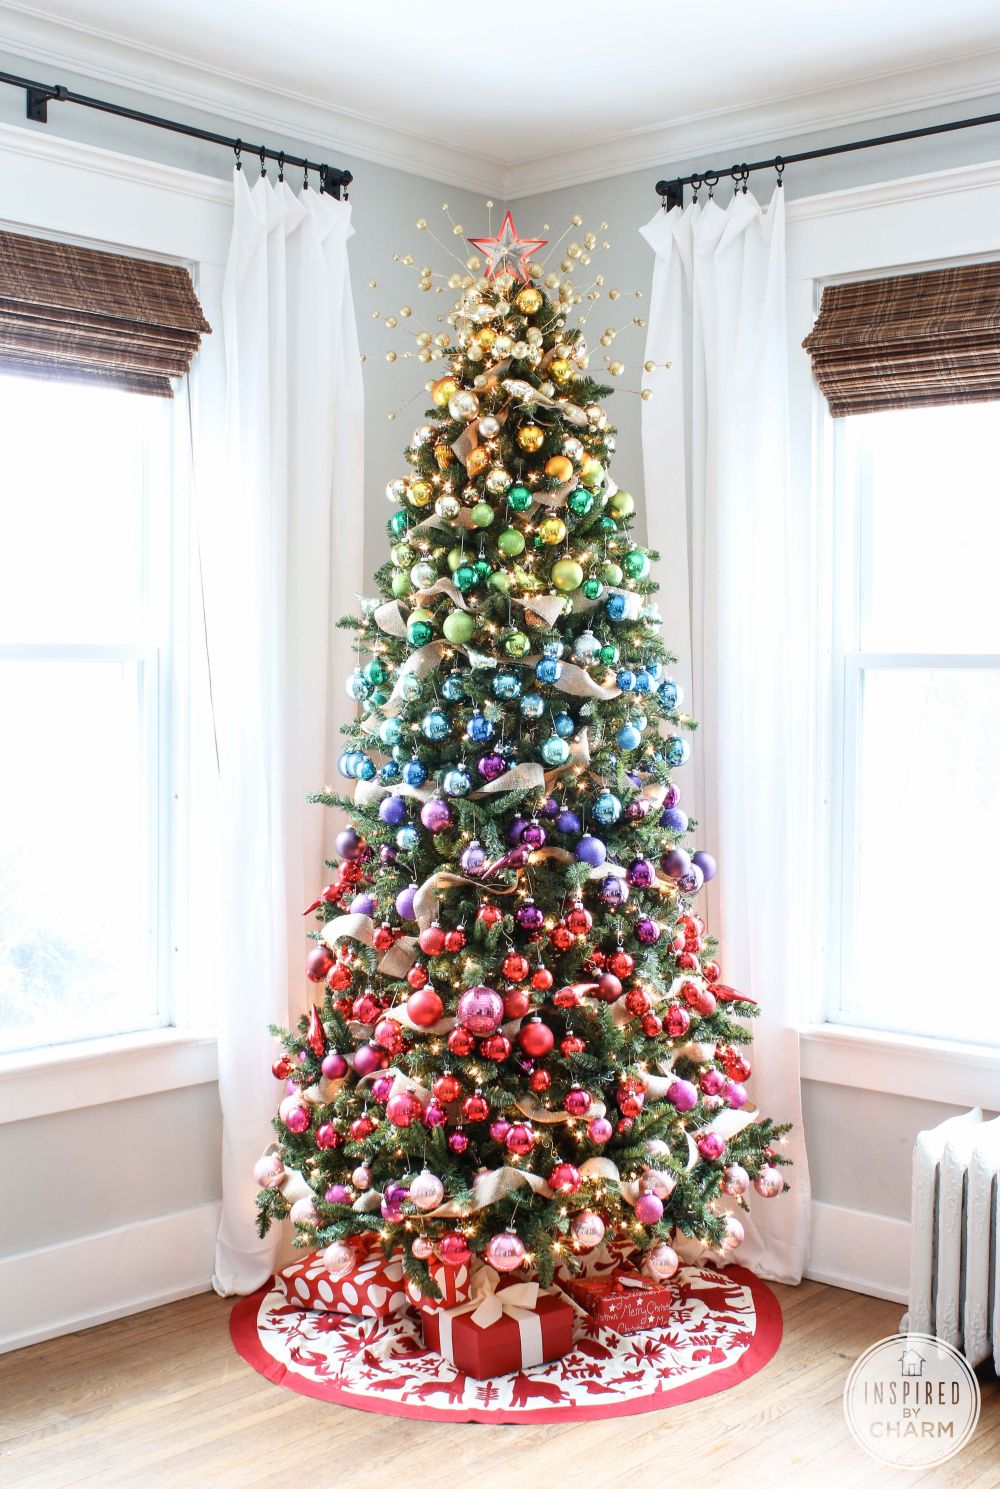 All The Wonderful Christmas Tree Ideas You Need For A ...